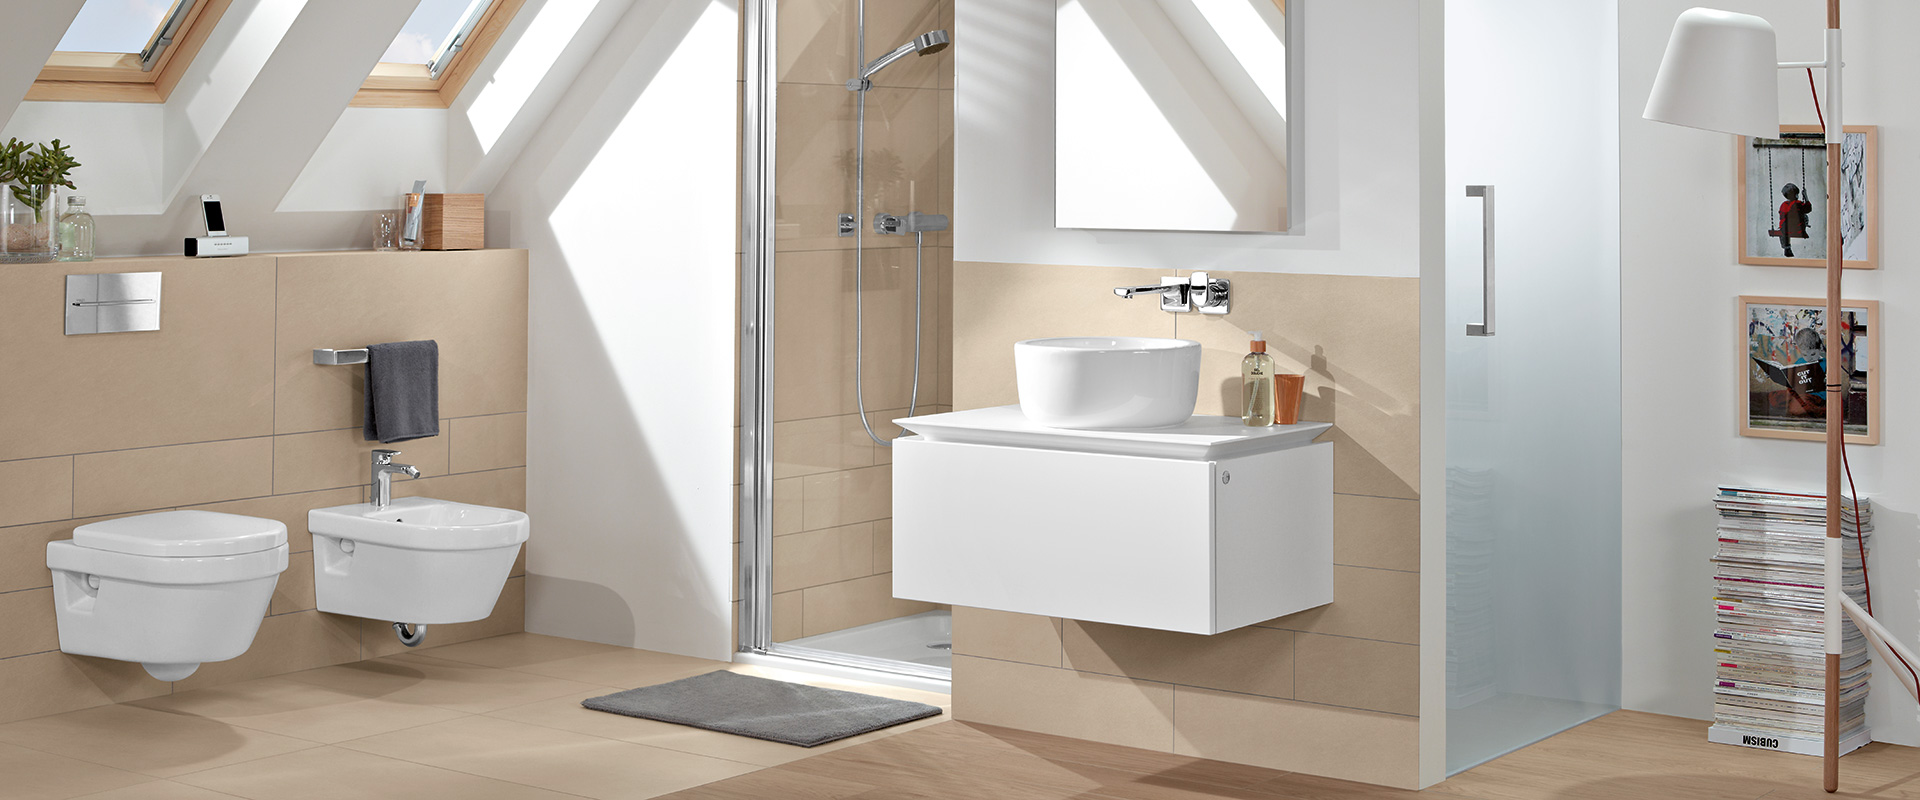 https://designerpages.s3.amazonaws.com/assets/59086691/architectura-sanitary-01.jpg